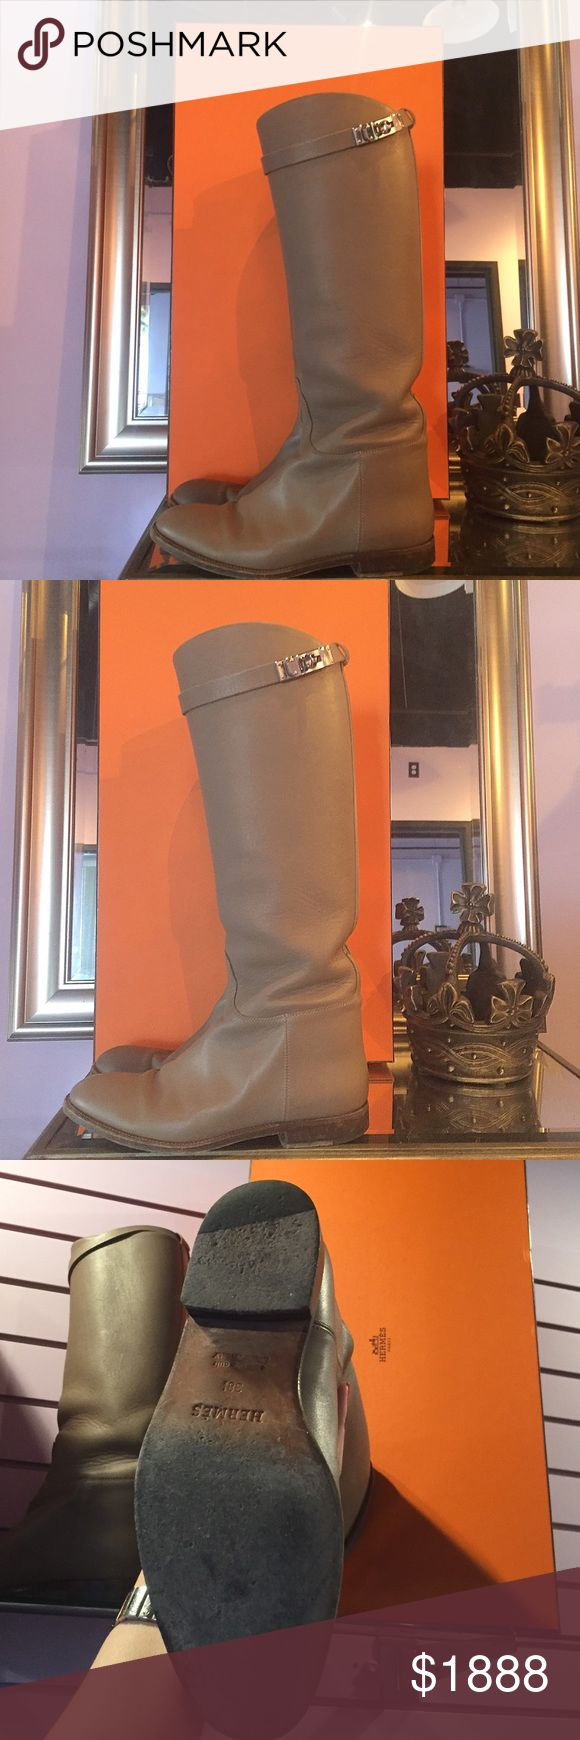 Authentic Hermès Jumping Kelly Birkin Boots MAKE ME AN OFFER ! 🐴 Barely worn but nicely broken in Hermès Jumping Kelly boots in Etoupe color! So chic and classic sure to be loved for generations! Comes with original orange box, shoe bags, and ribbons! Purchased at Hermès at Wynn.  As always our items are always authentic! We are a consignment store located one block off of the Las Vegas Strip!  Want more photos or have a question? 👉🏻 dayandnightlv @ G M a i l . C o m 💜😉✨ Hermes Shoes…